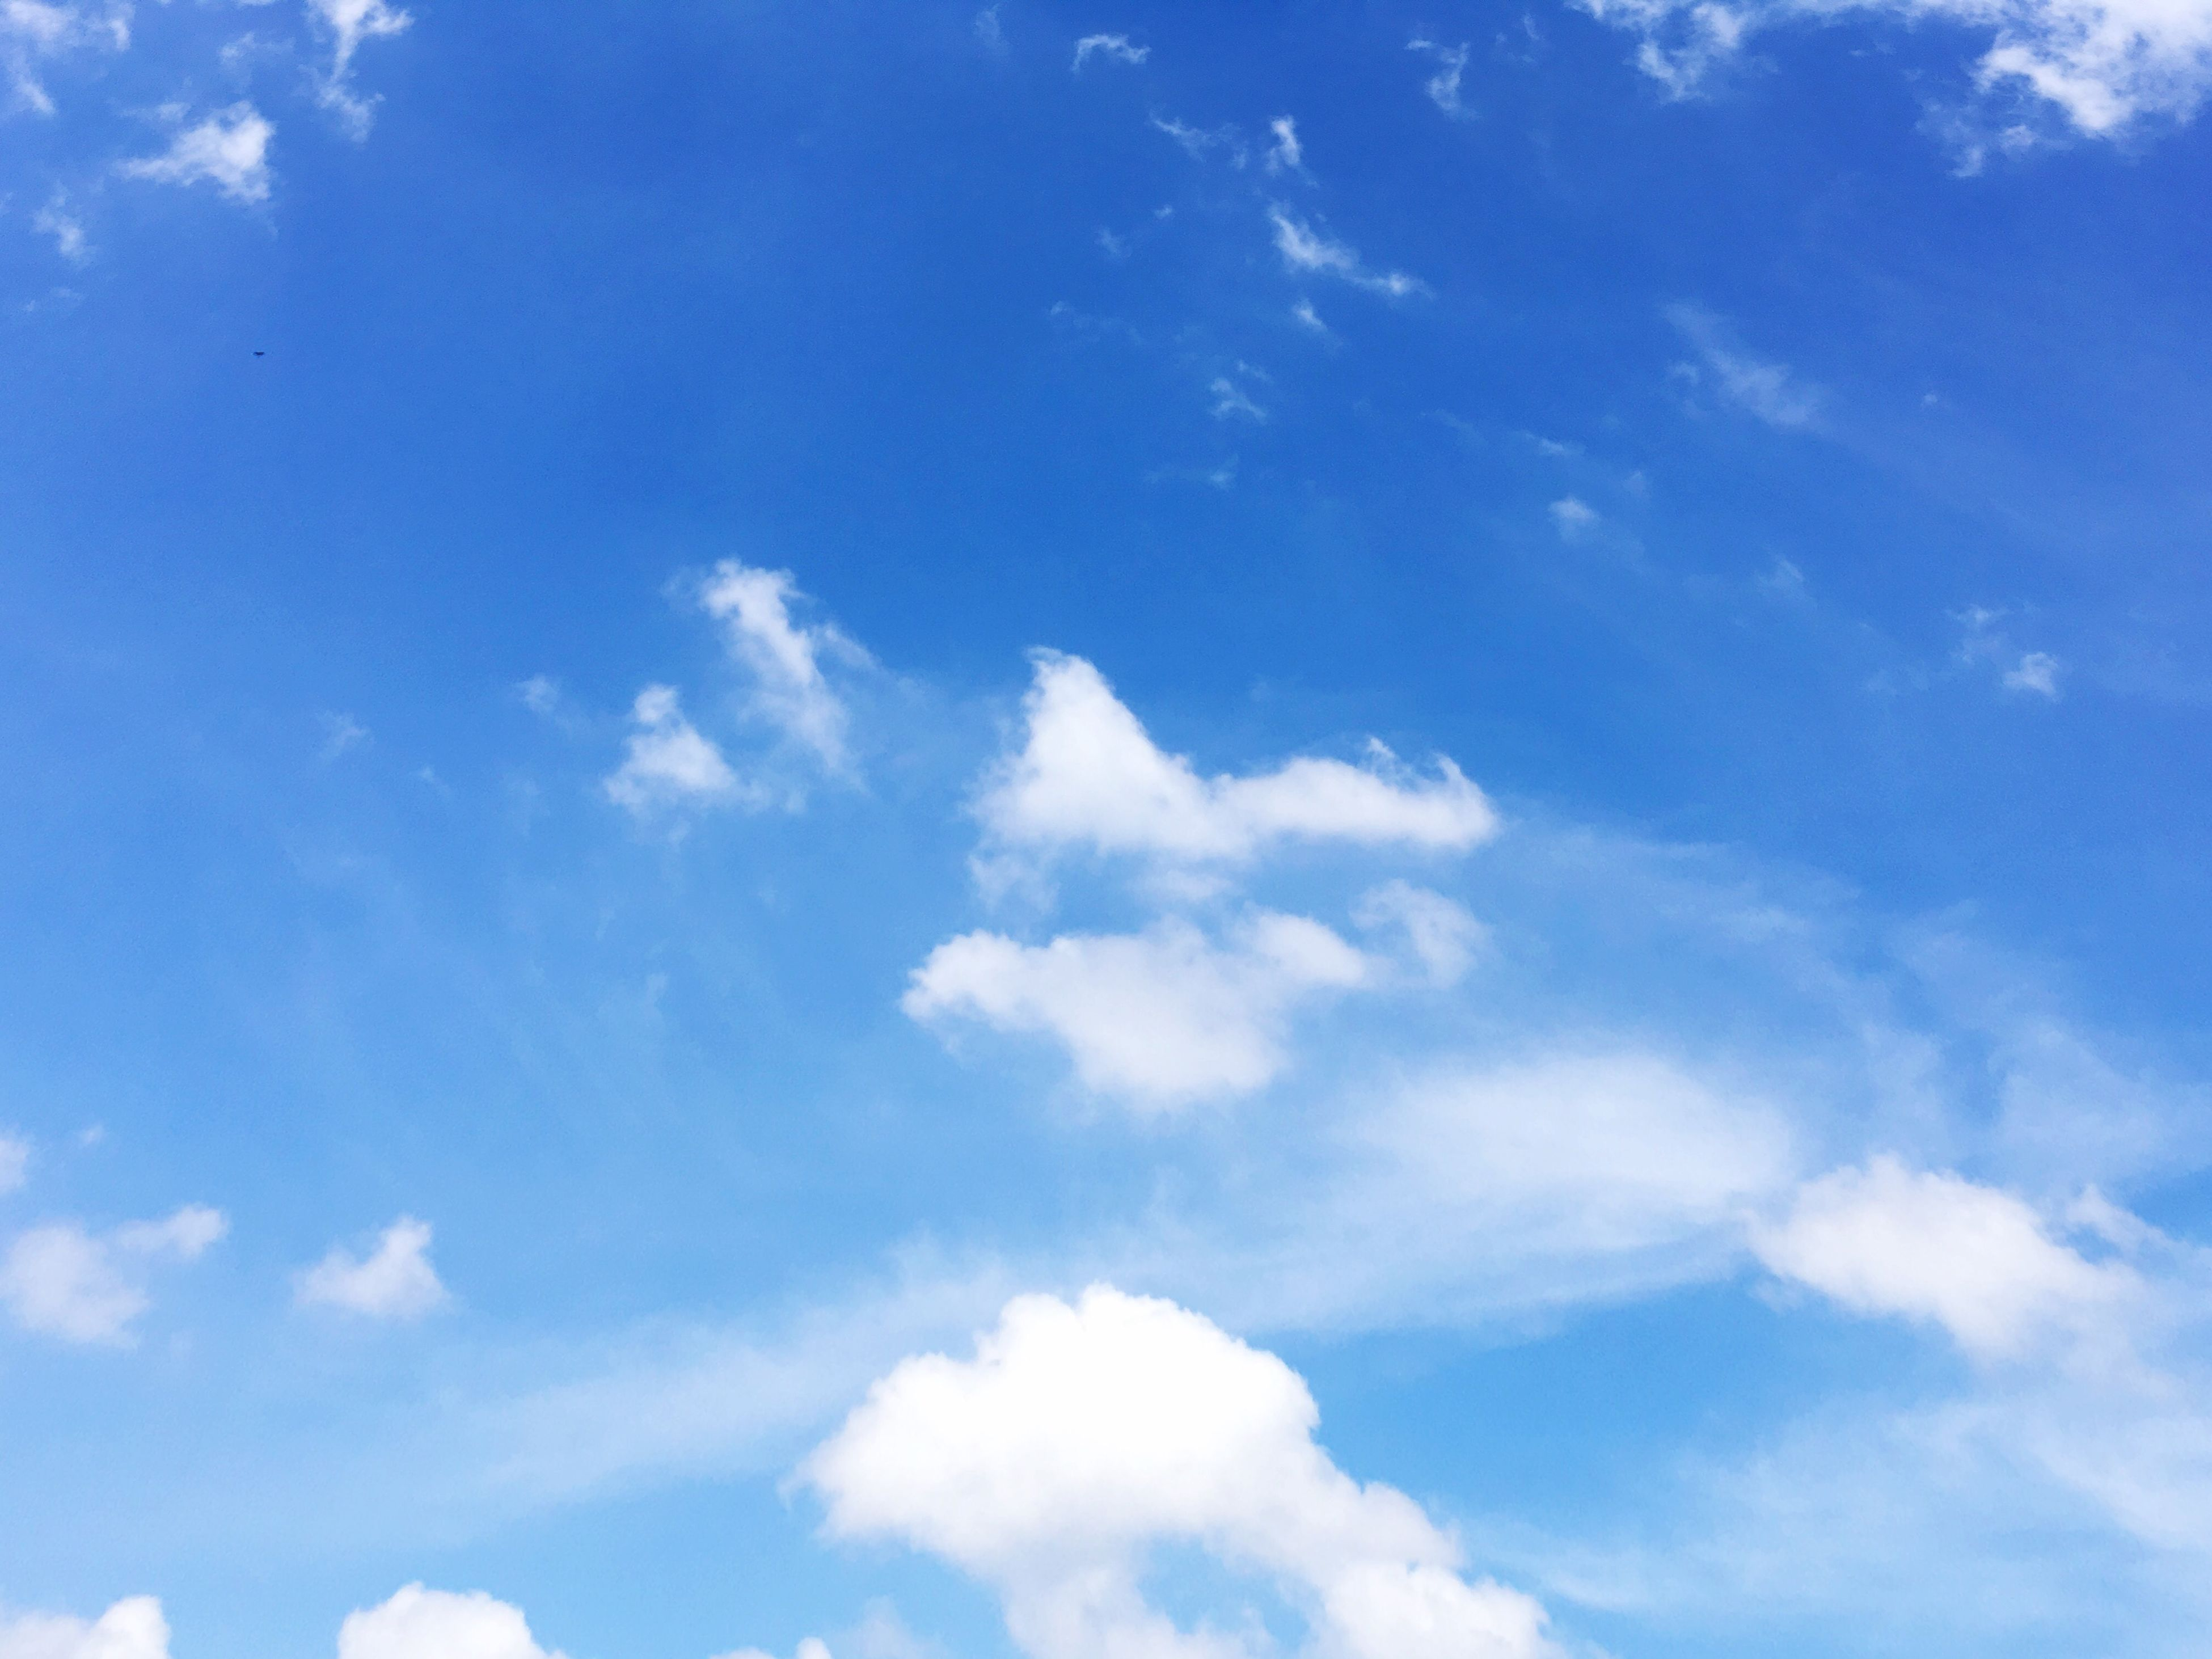 sky, cloud - sky, low angle view, blue, nature, tranquility, beauty in nature, idyllic, scenics, backgrounds, no people, day, sky only, outdoors